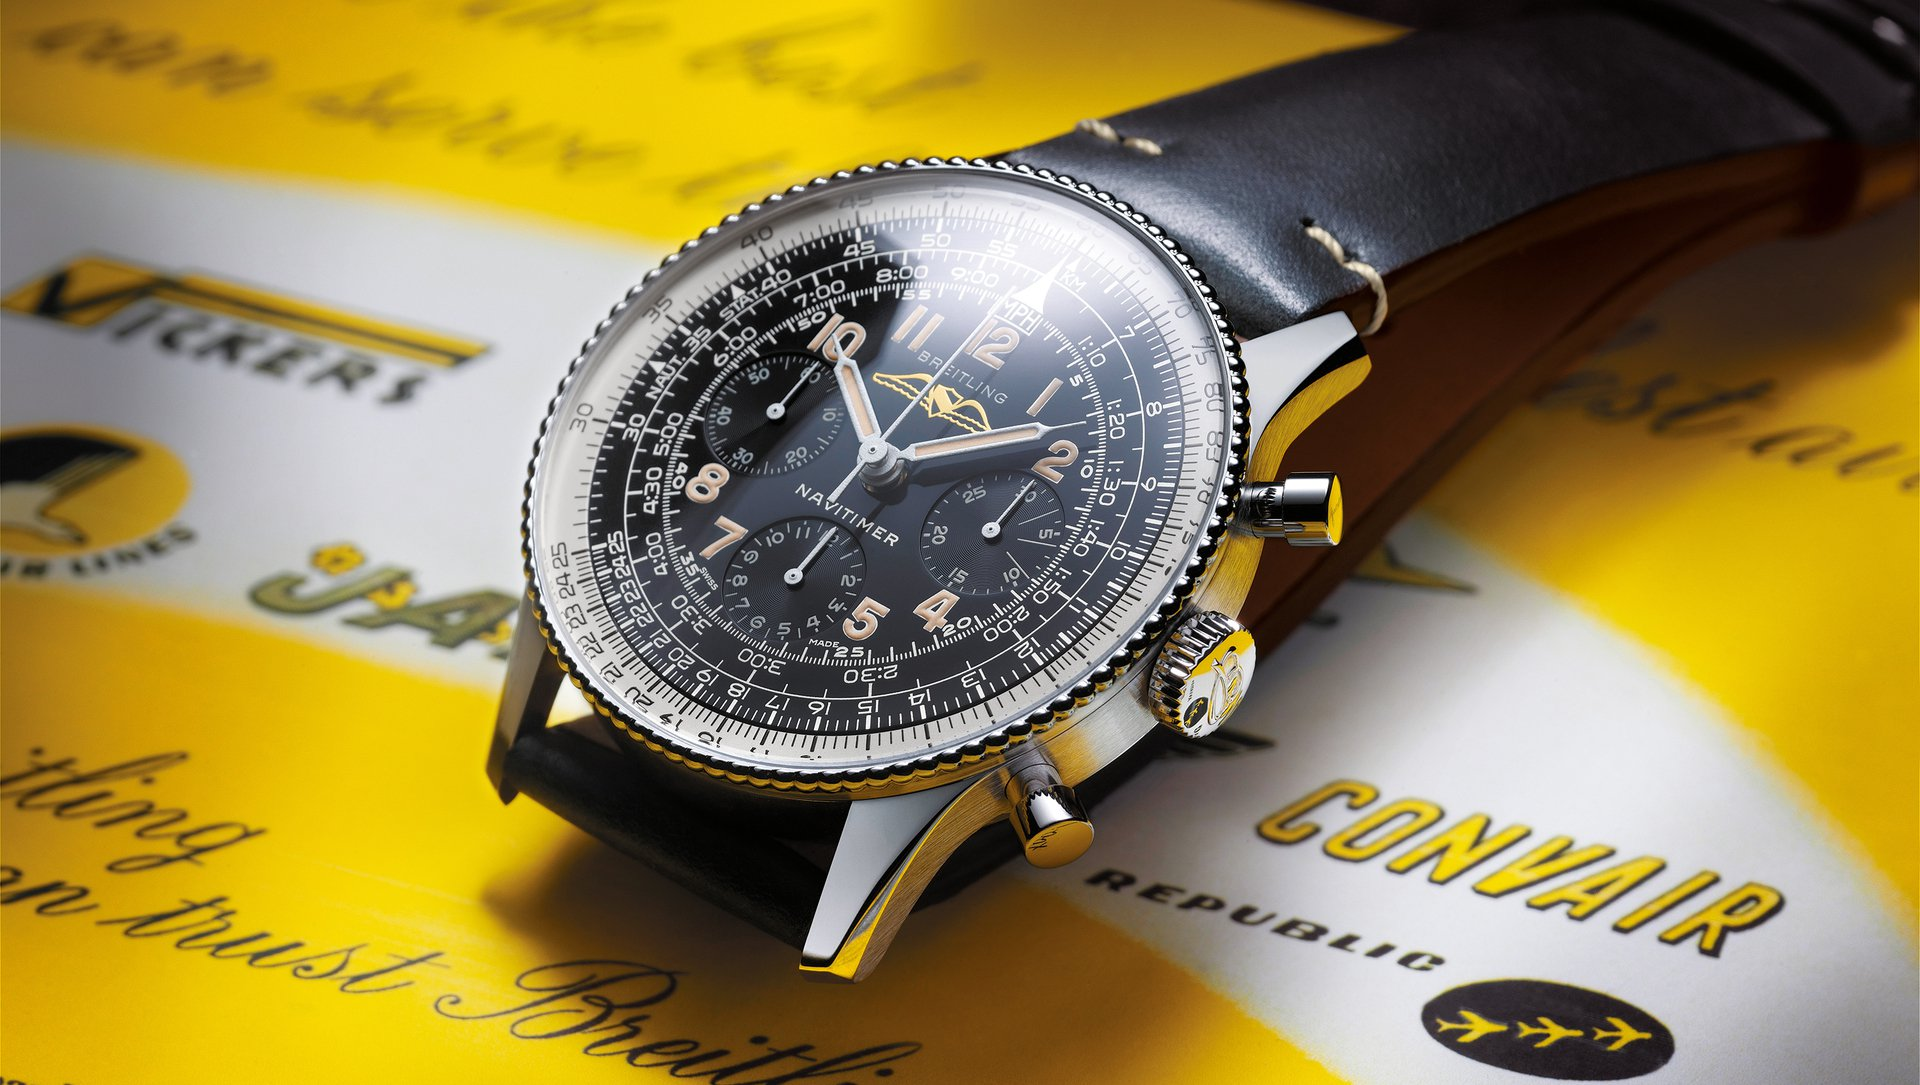 https://static.breitling.cn/media/wysiwyg/news/19-3-15/1.jpg